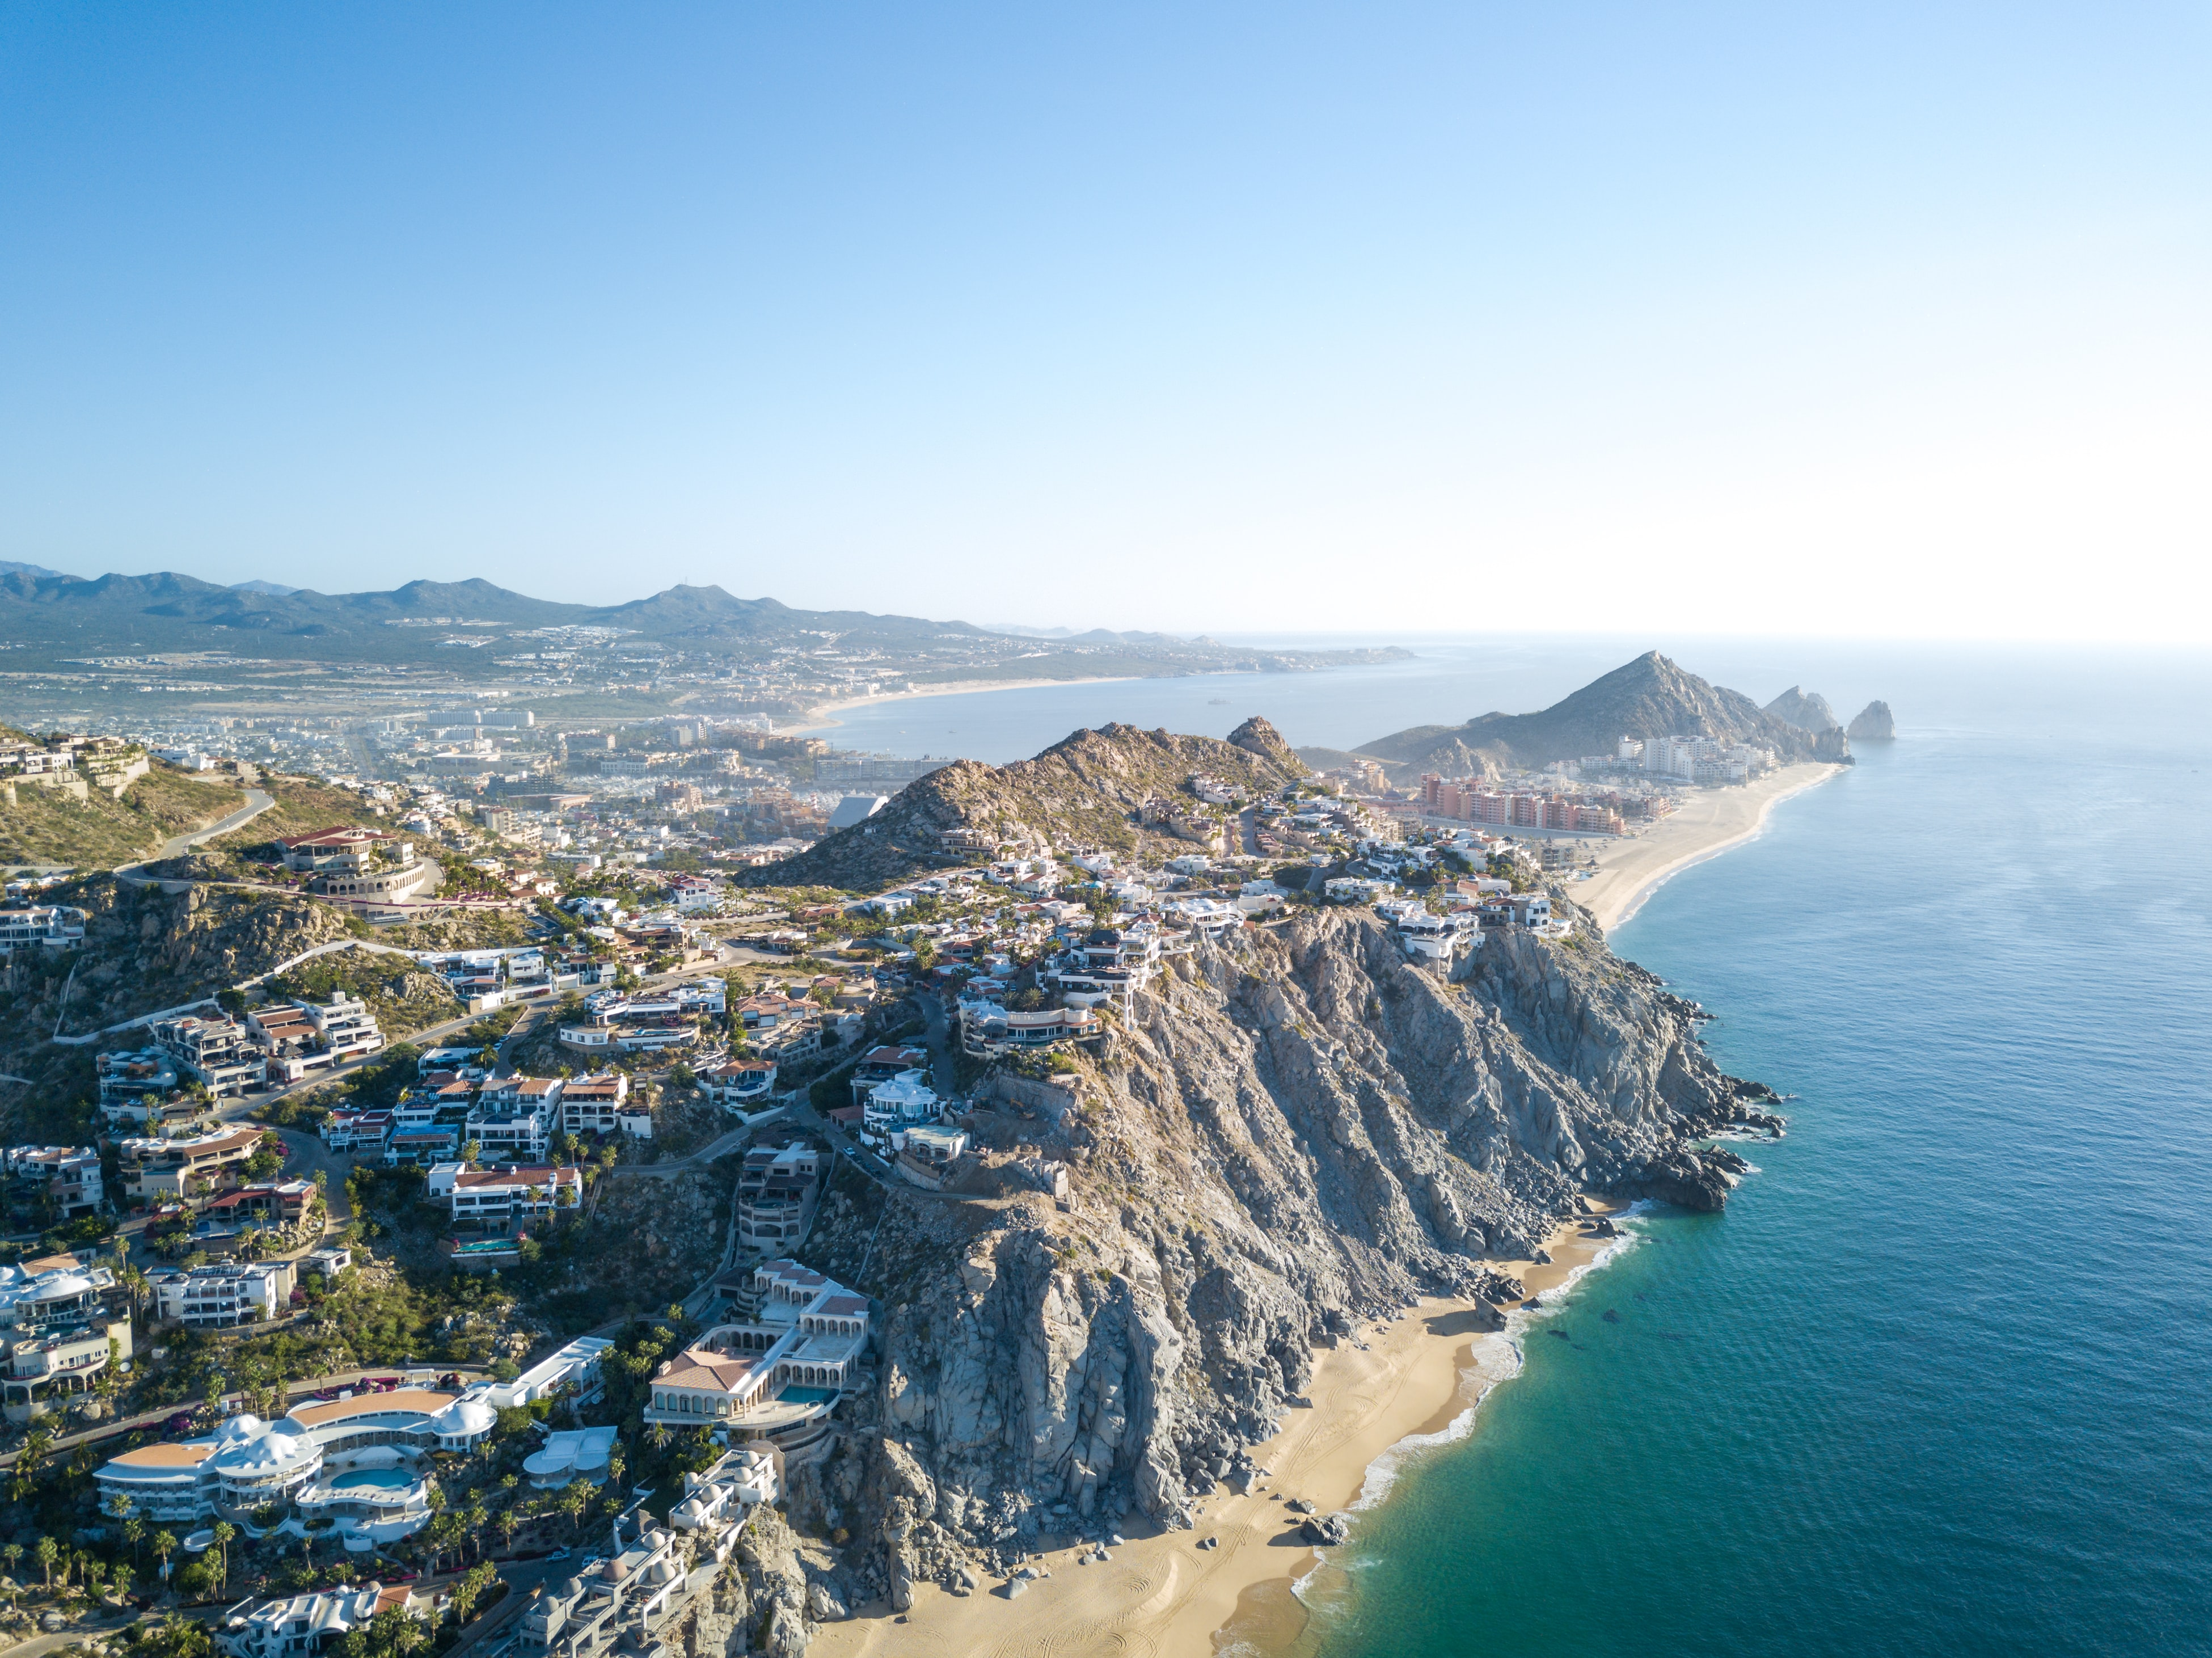 Honeymoon-at-Home Date Night, Destination: Cabo San Lucas, Mexico